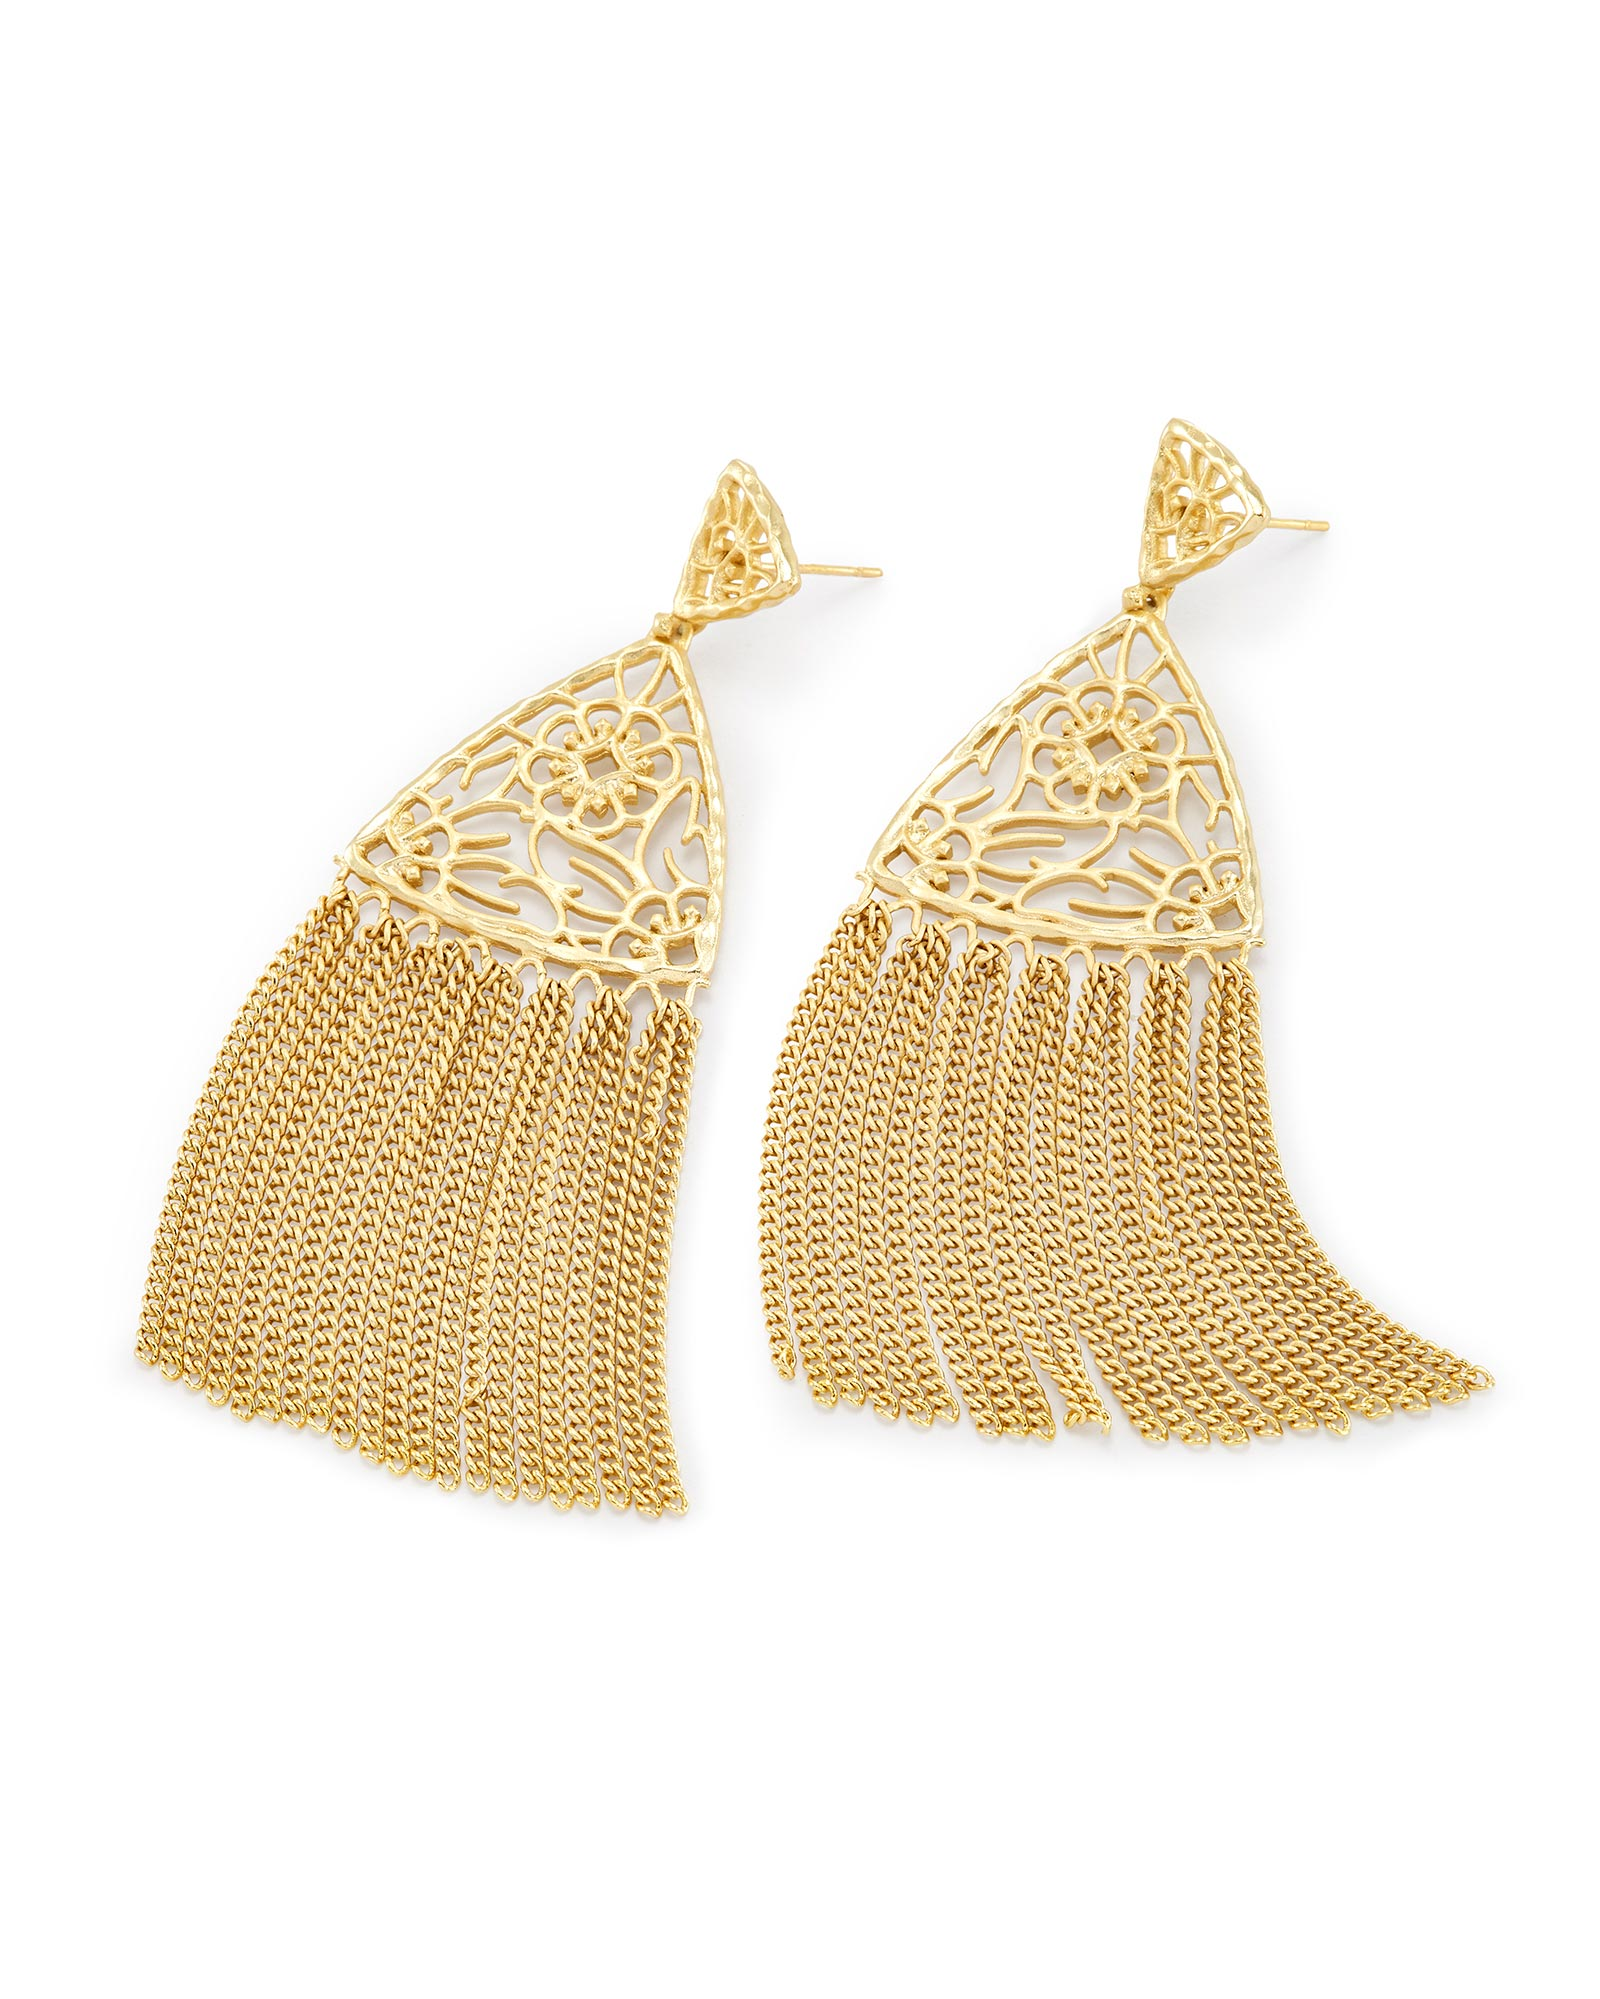 Ana Statement Earrings